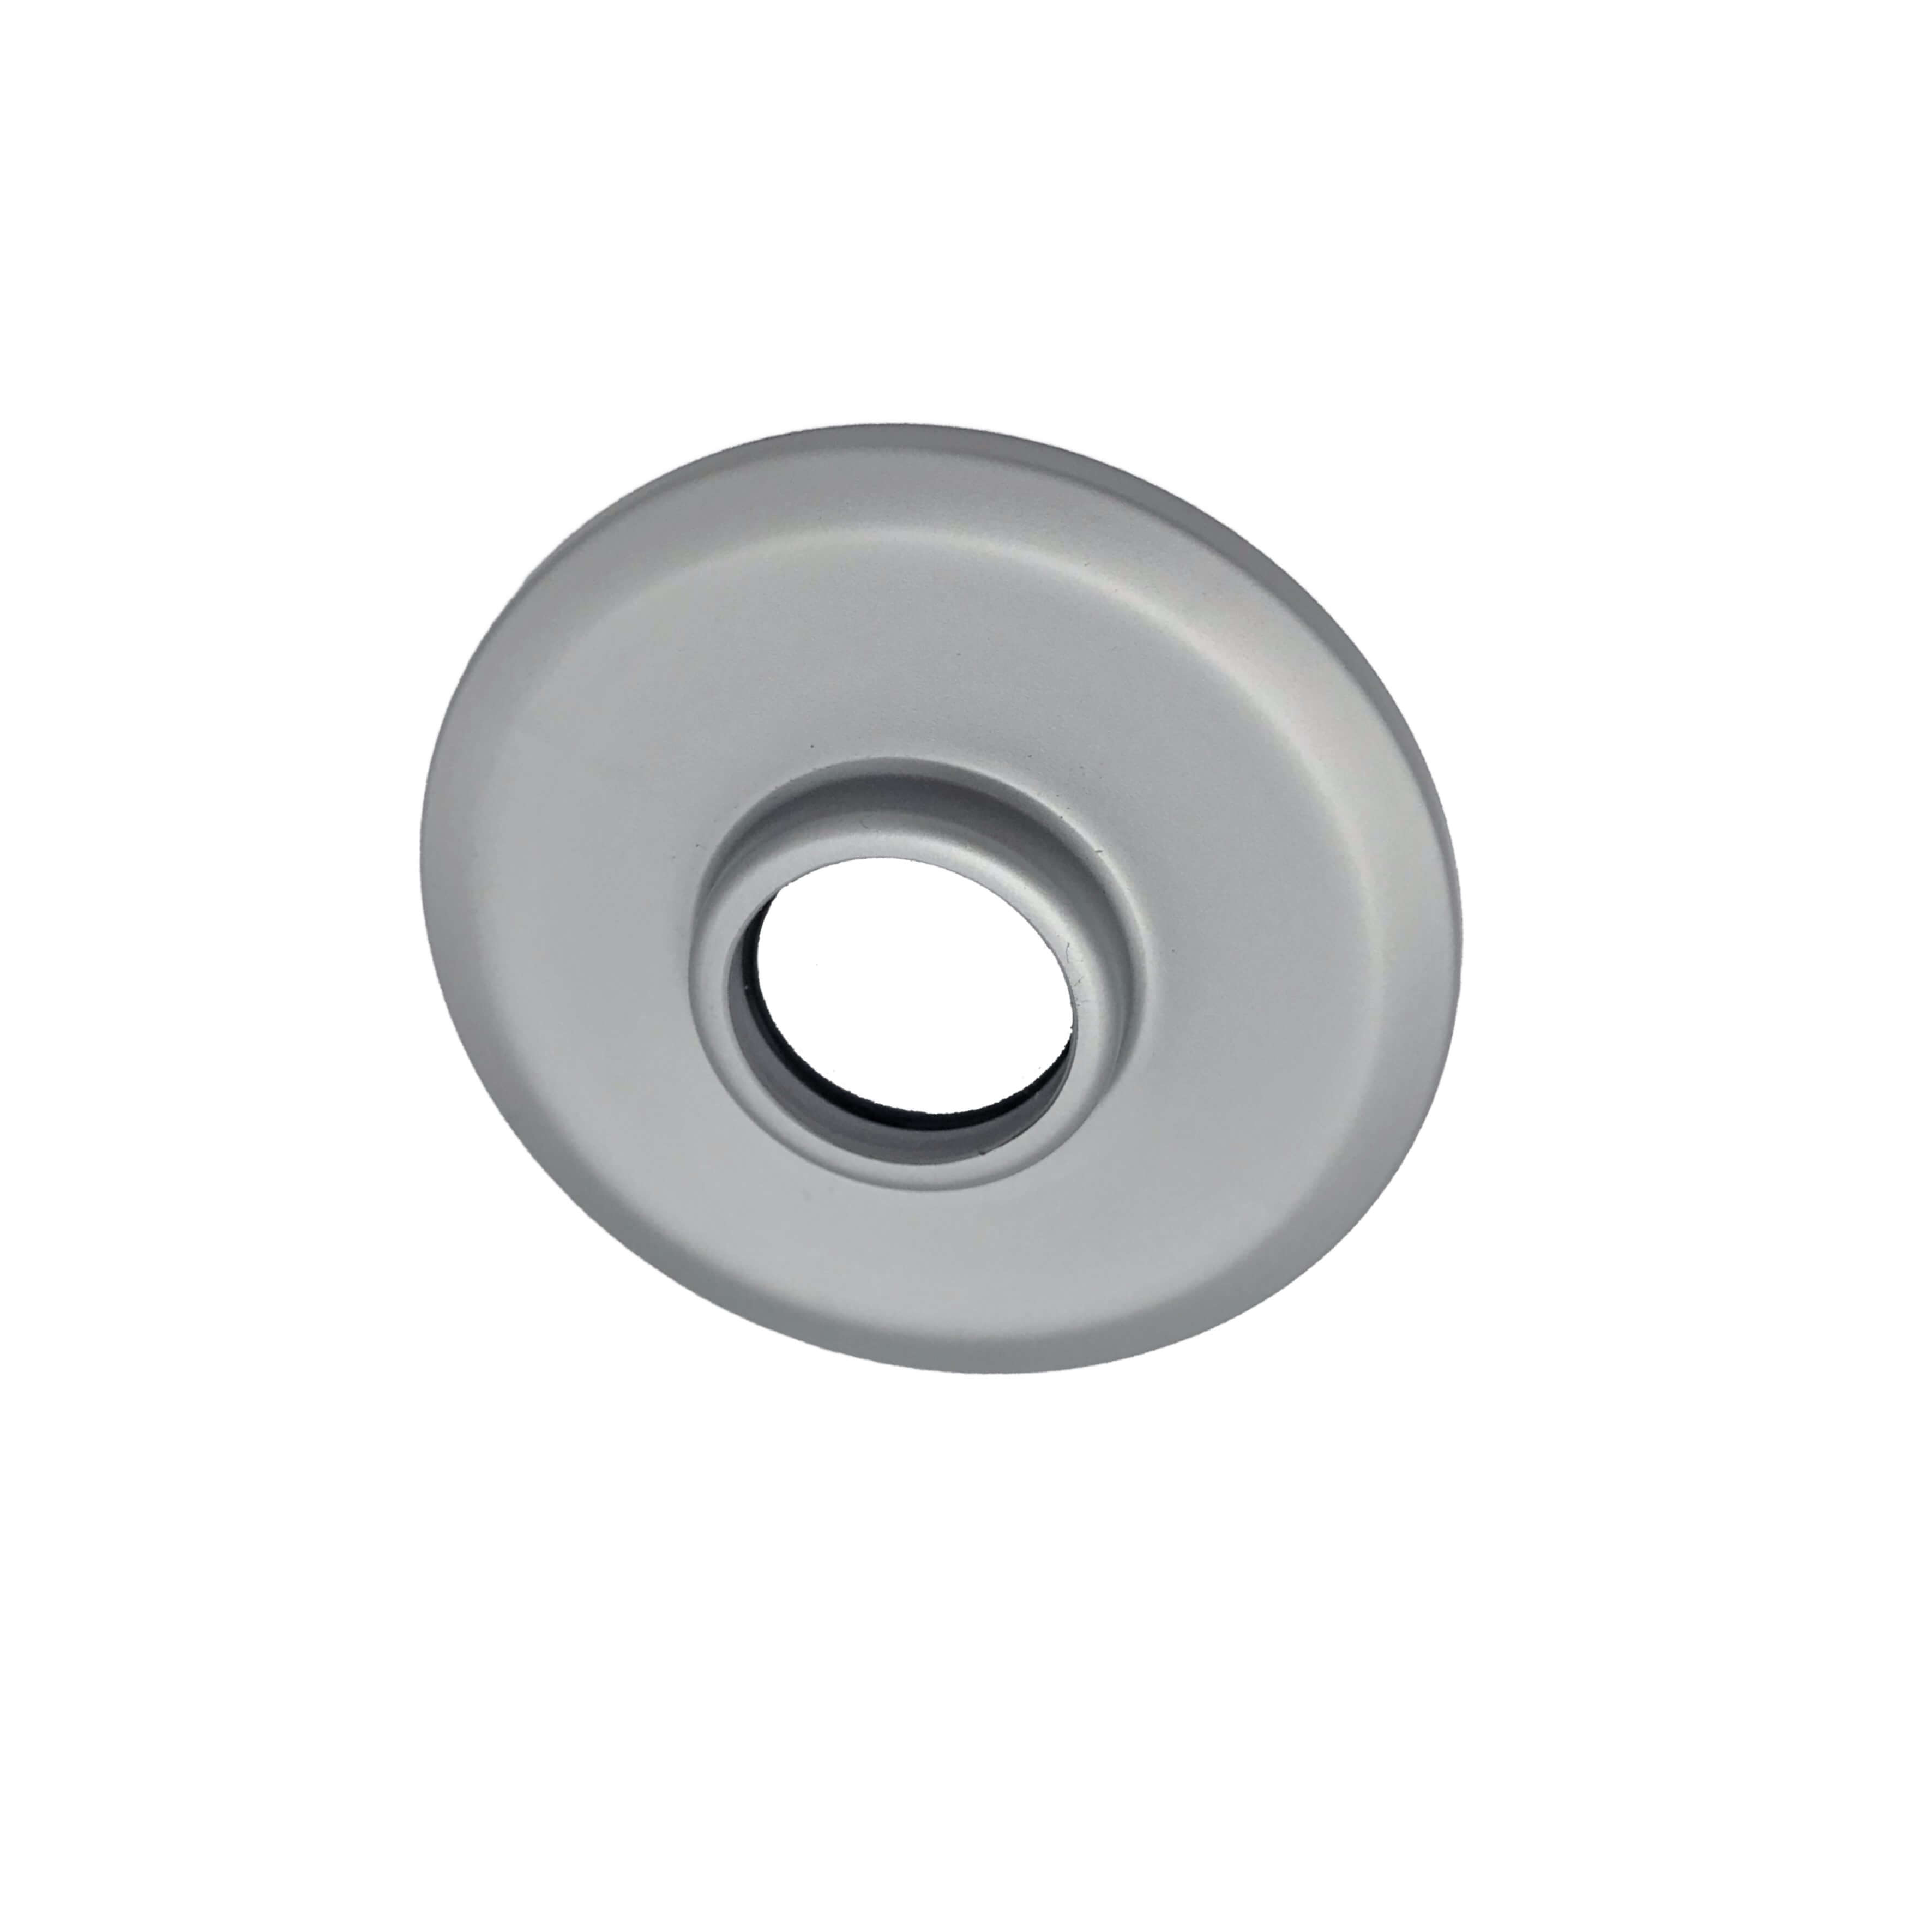 Aqualisa Rail Ceiling Cover Plate Silver 223210